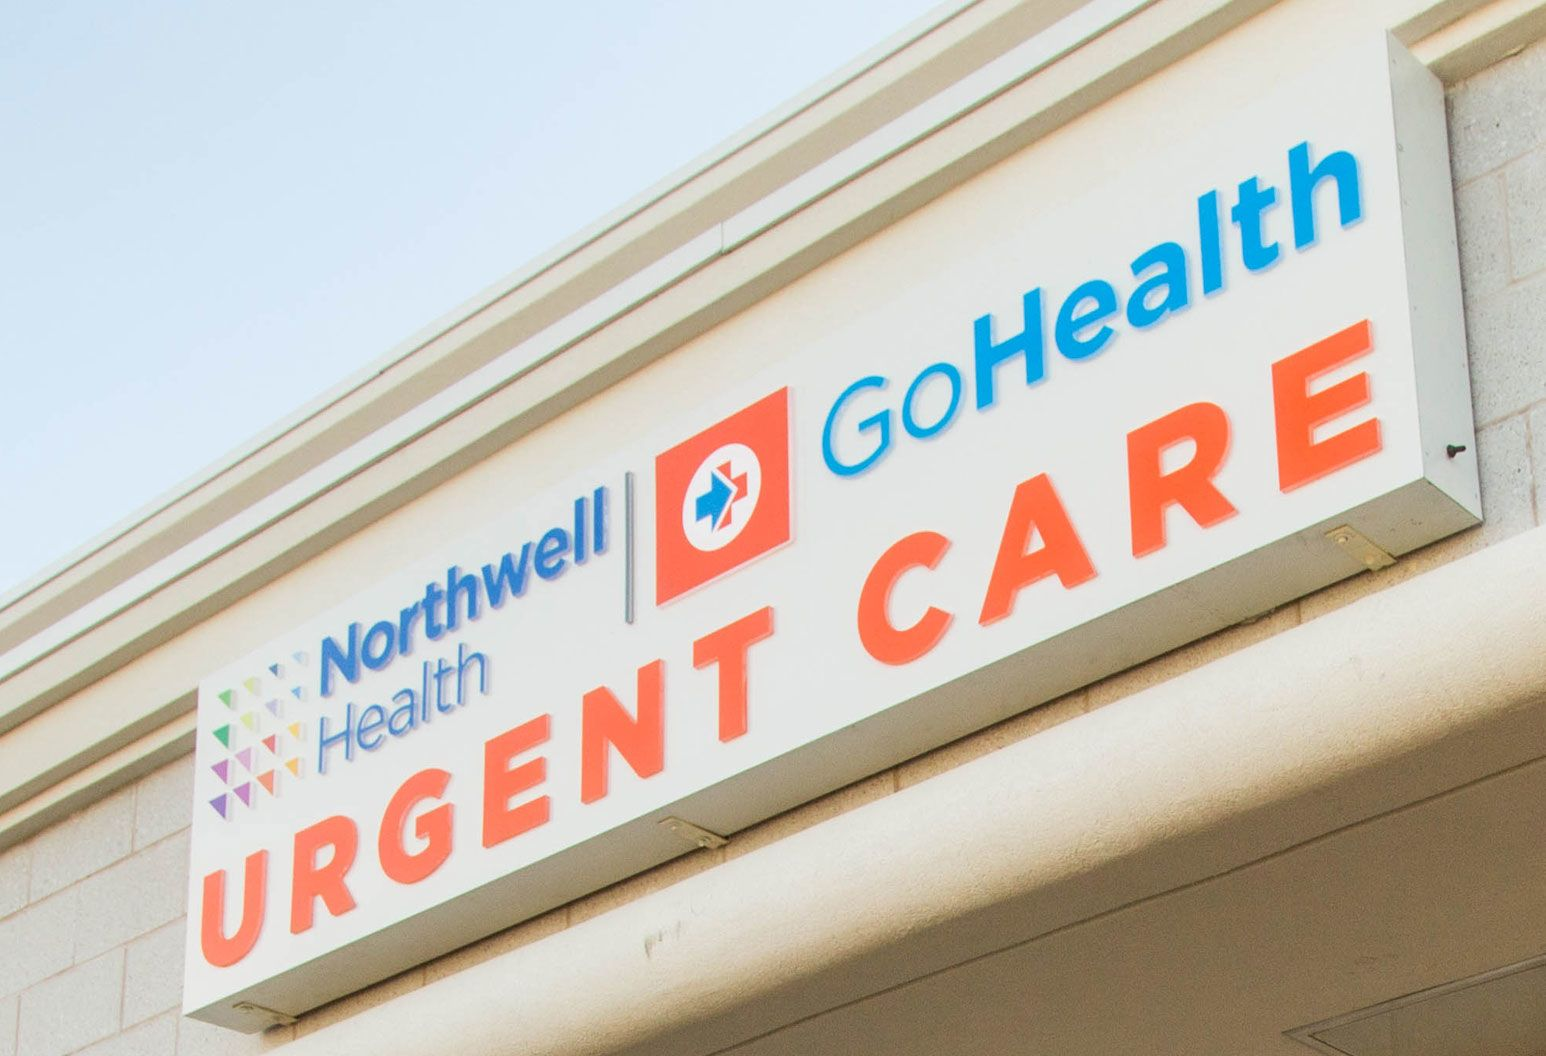 """Northwell Health, GoHealth, Urgent Care"" sing on exterior of building"